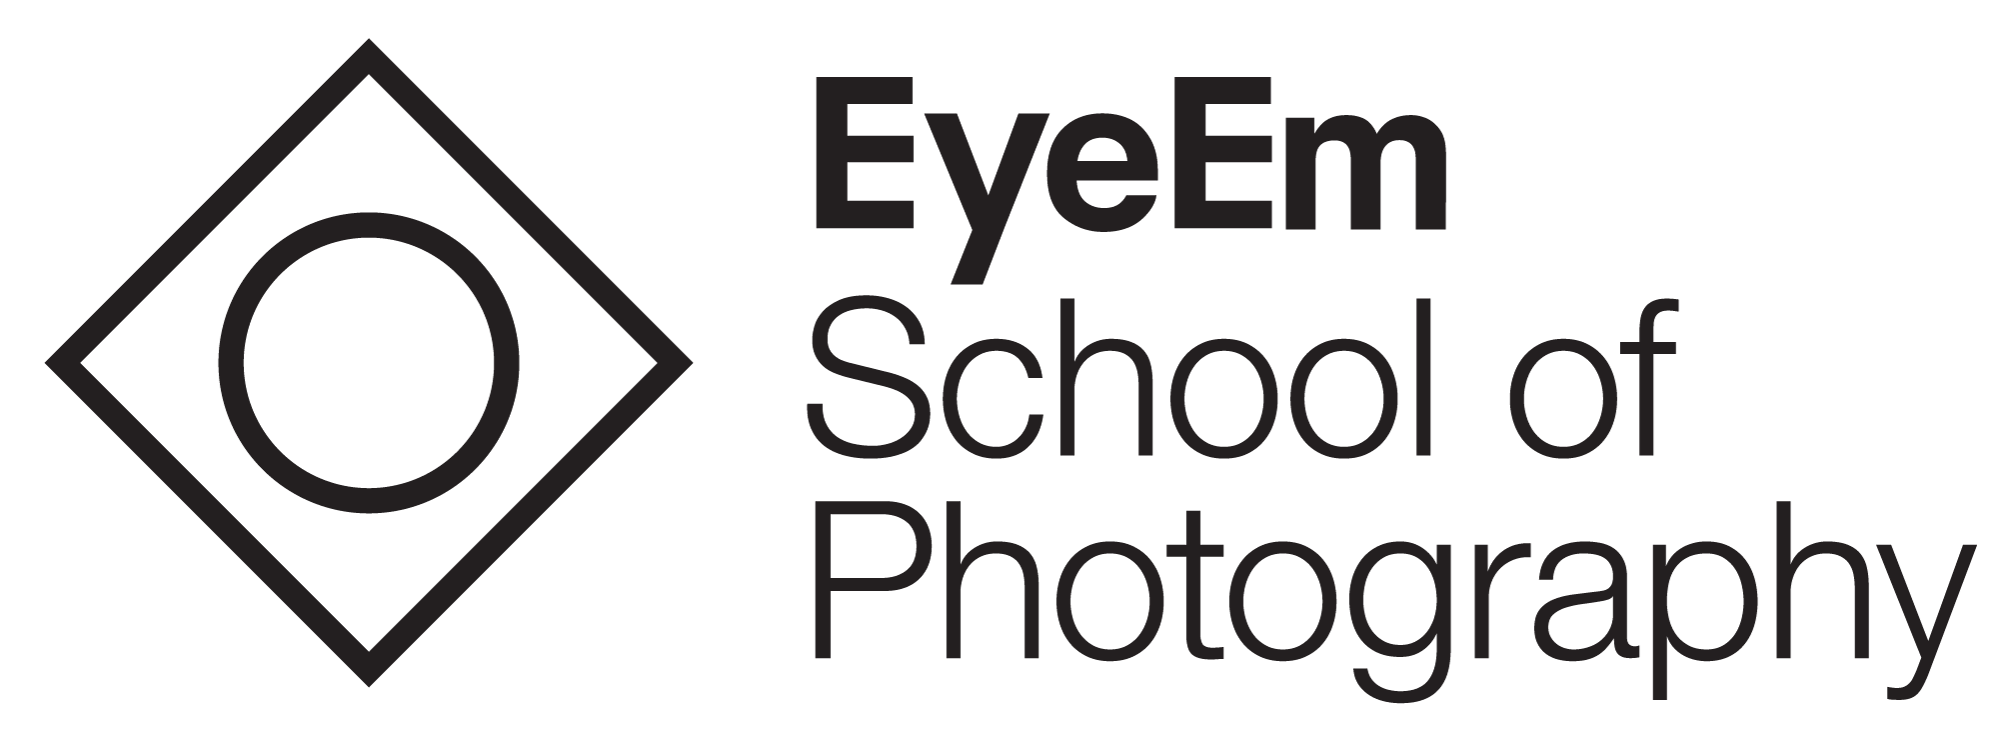 EyeEm_SOP_logo_black_on_transparent